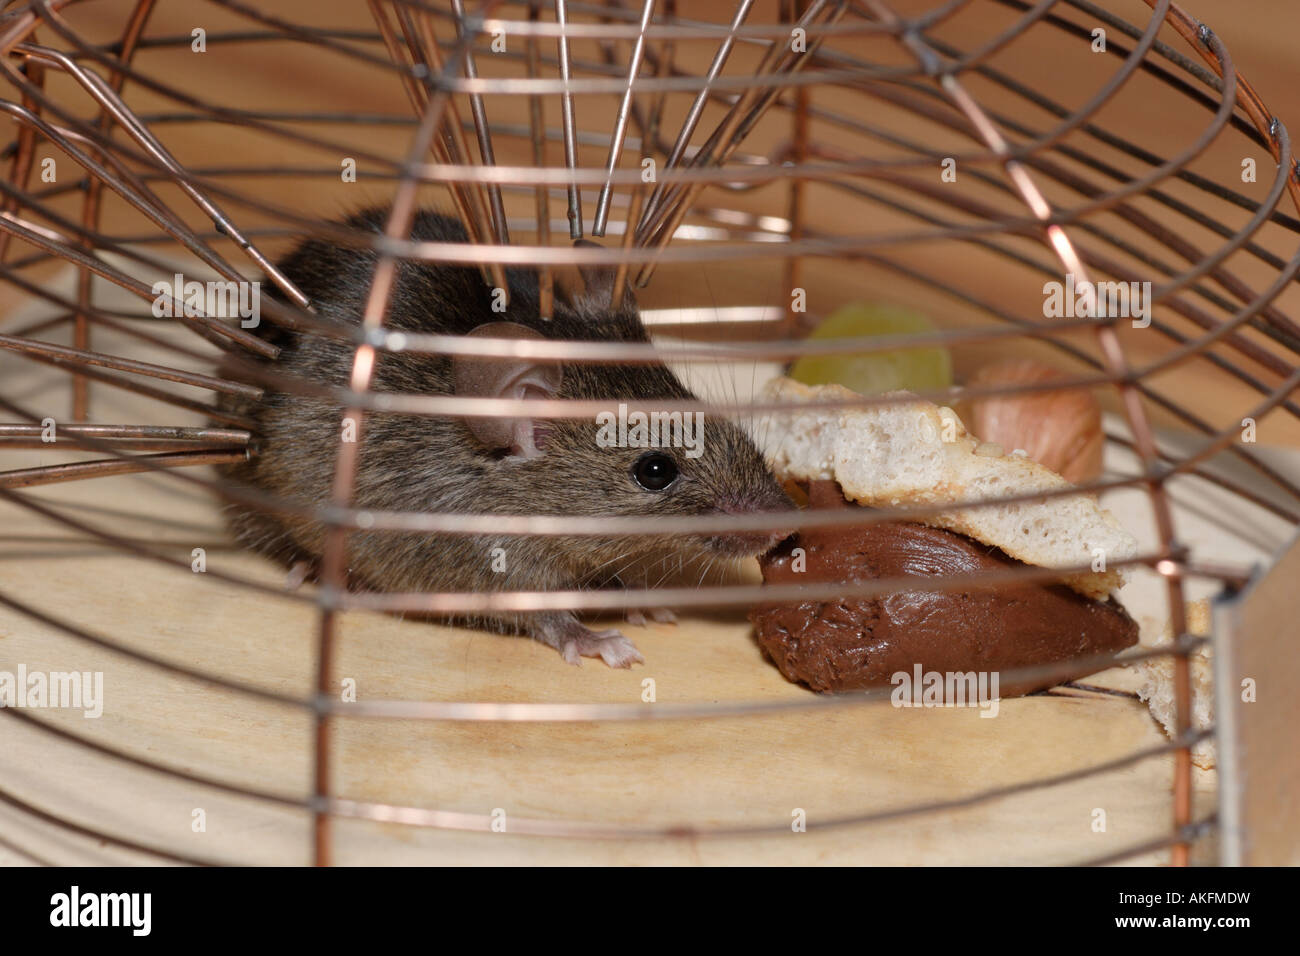 Scared house mouse in live trap - Stock Image